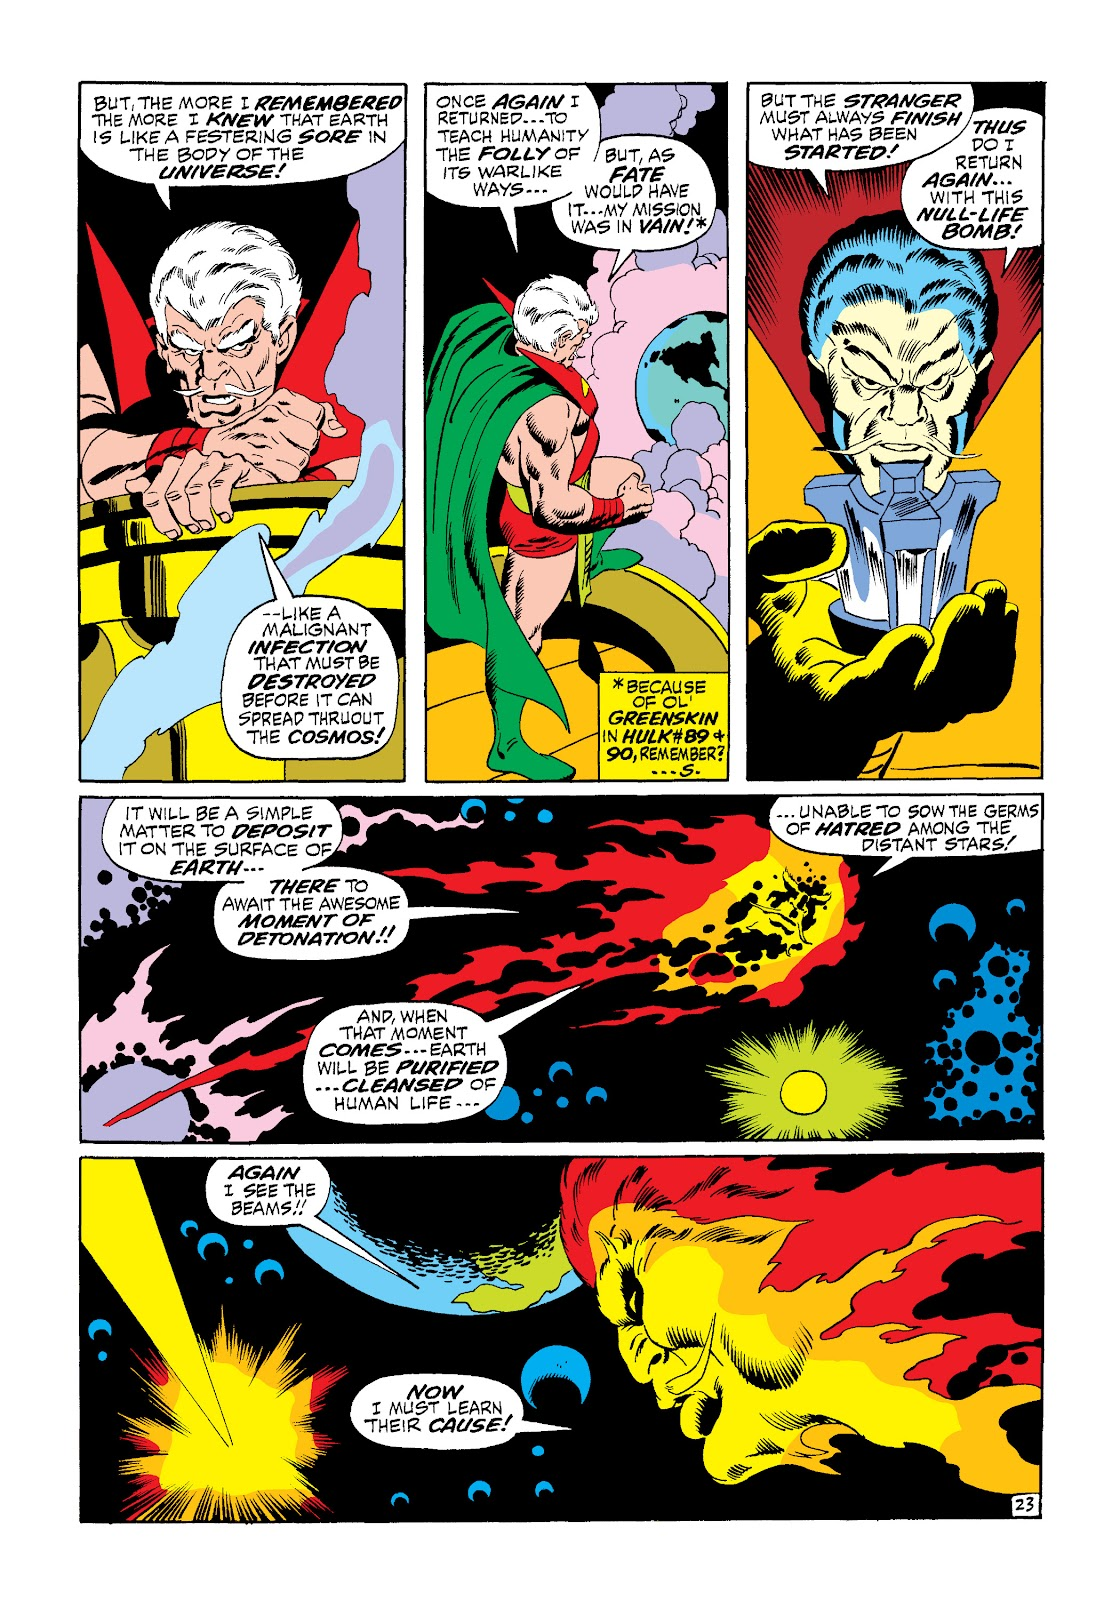 Read online Marvel Masterworks: The Silver Surfer comic - Issue # TPB 1 (Part 2) - 91